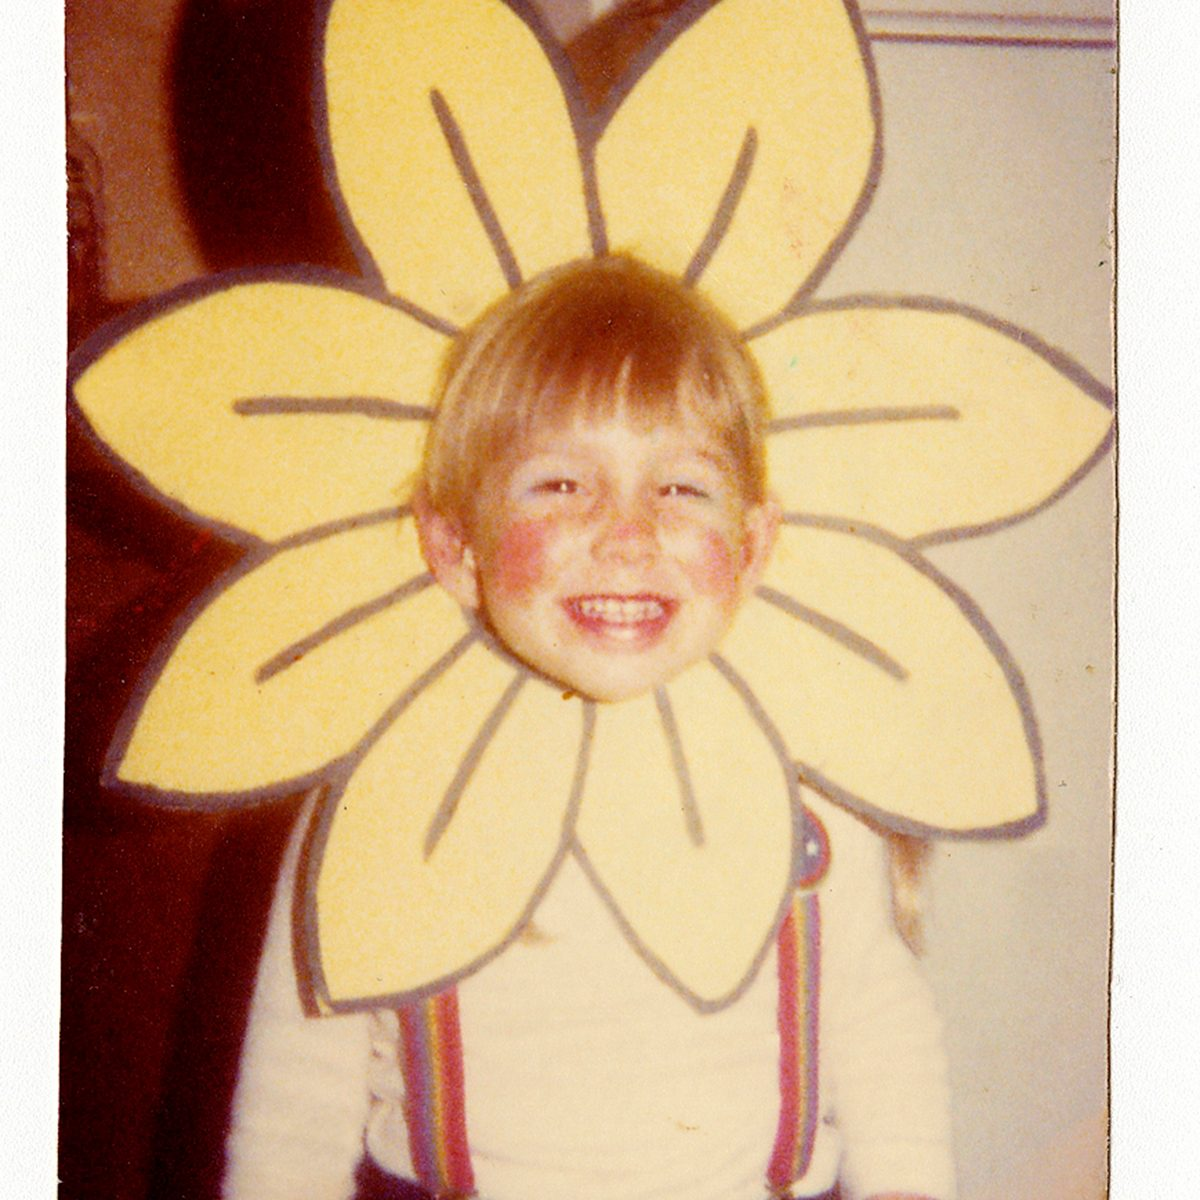 child dressed as flower for Halloween costume